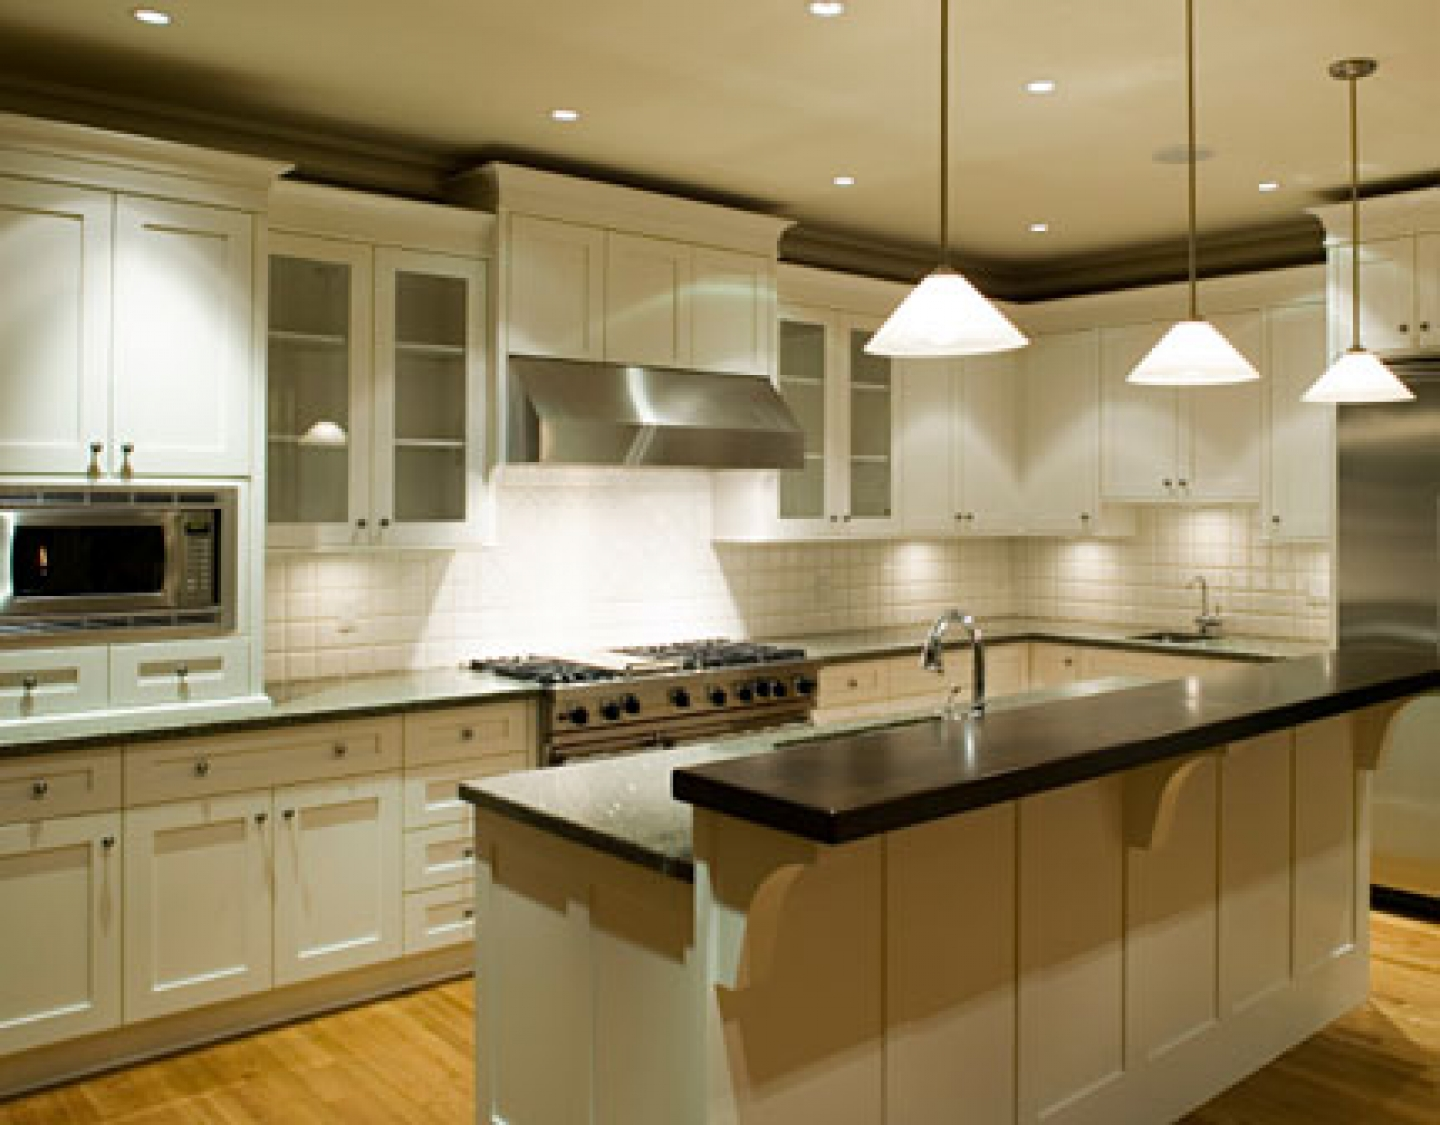 White kitchen cabinets stylize your house cabinets direct for Quality kitchen cabinets